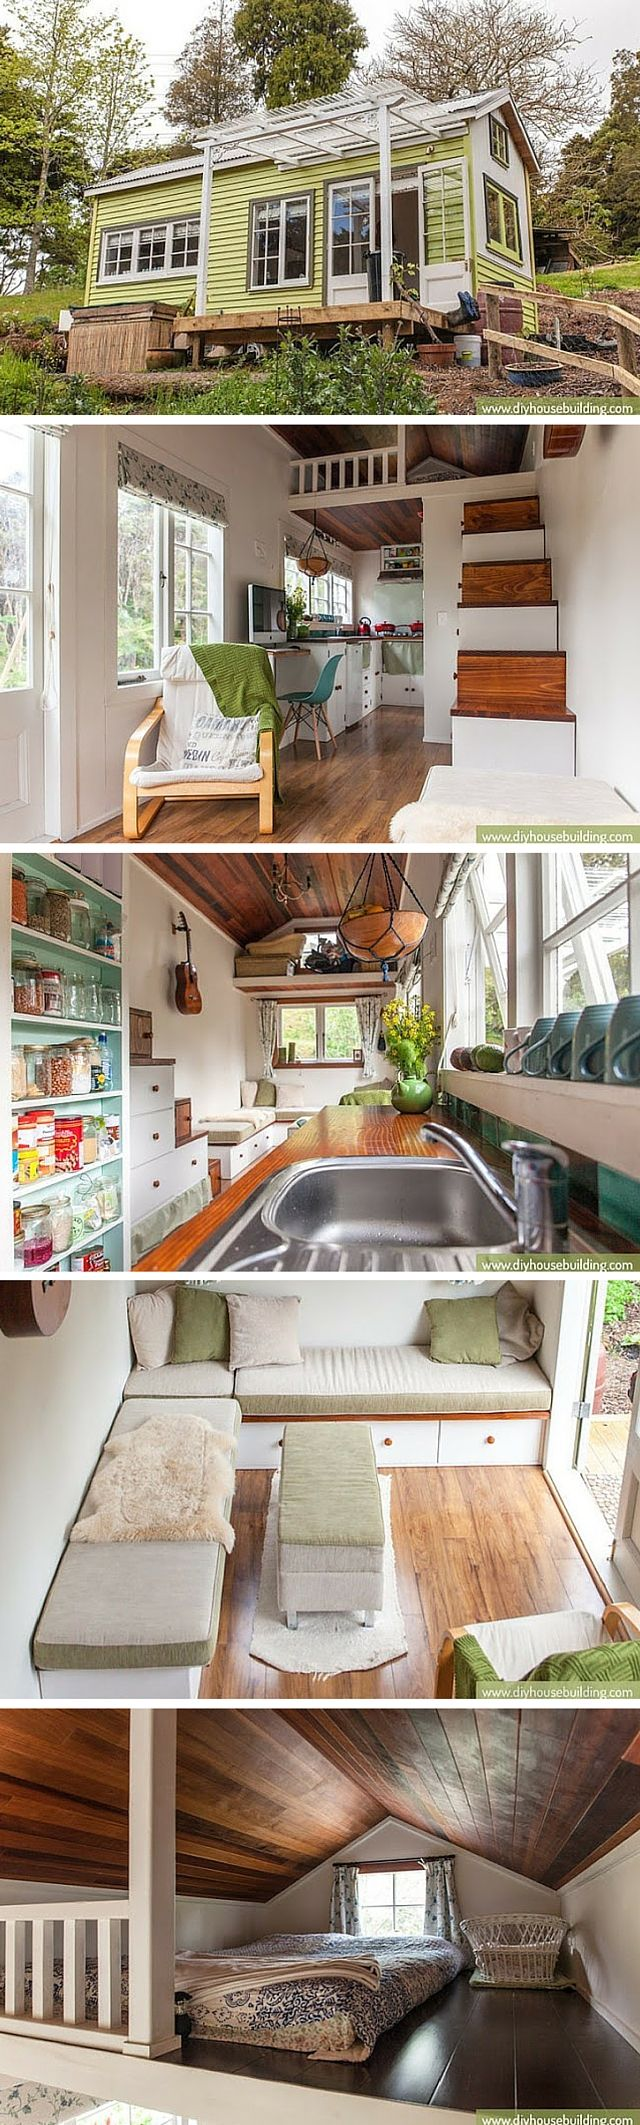 Lucy the Tiny House: a 186 sq ft home in New Zealand, occupied by a couple and…